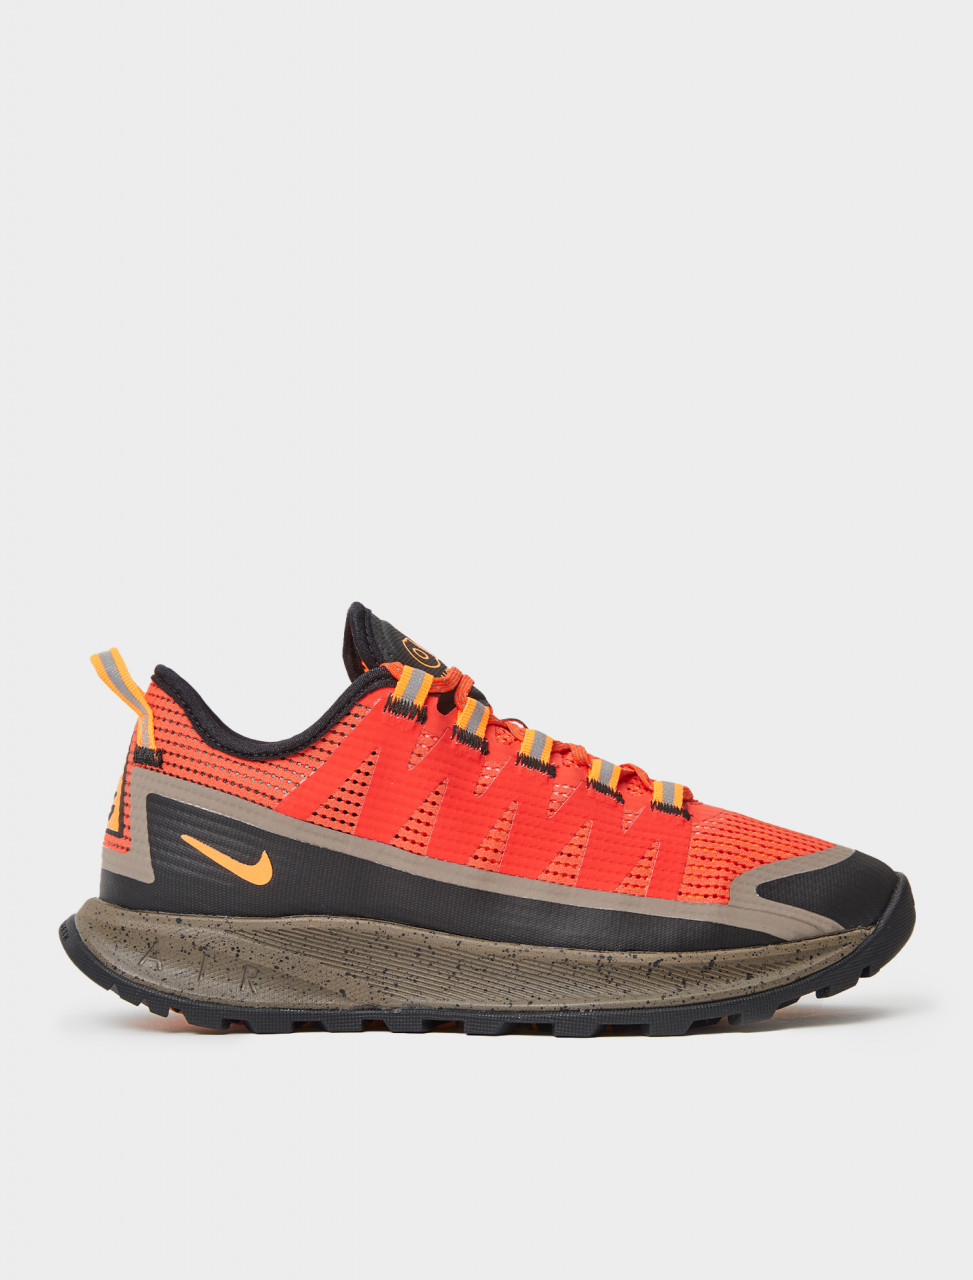 149-CV1779-600 NIKE ACG AIR NASU HABANERO RED TOTAL ORANGE